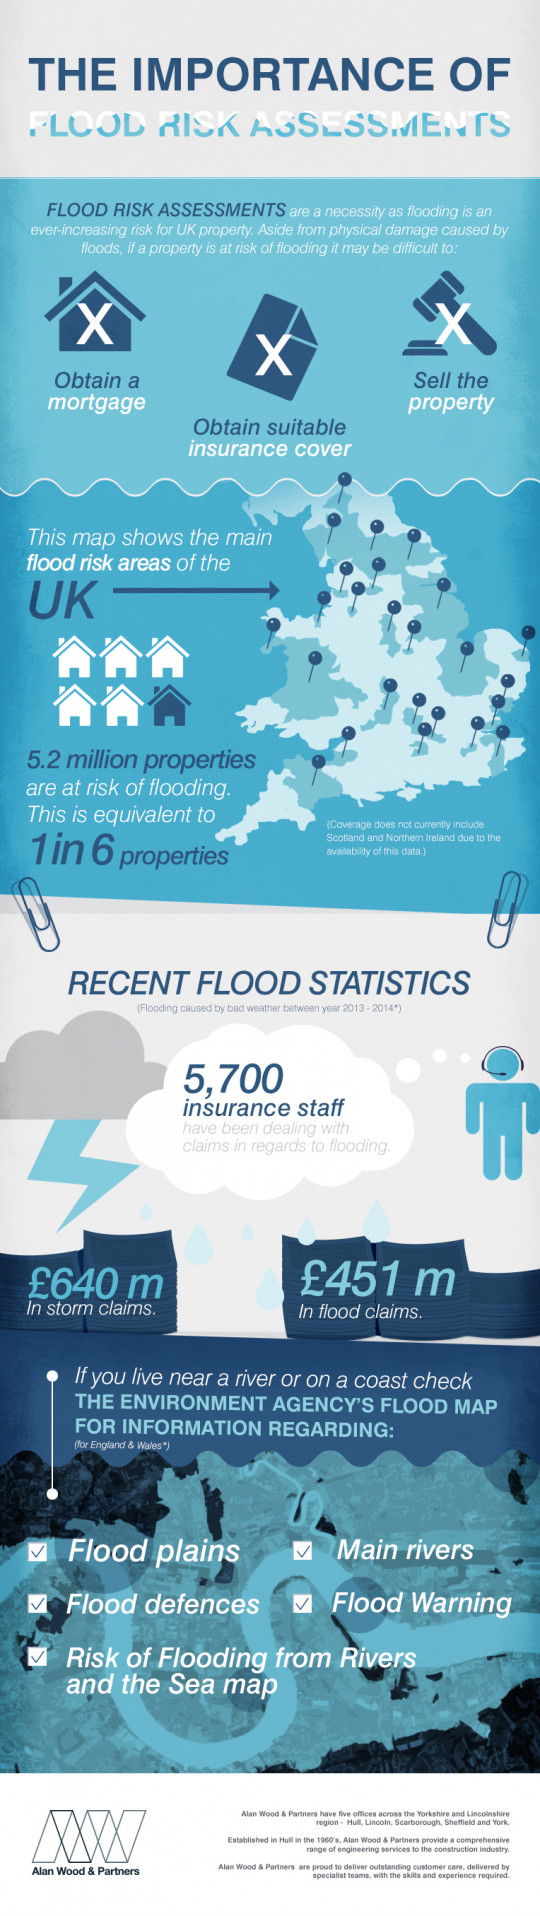 The importance of Flood Risk Assessments